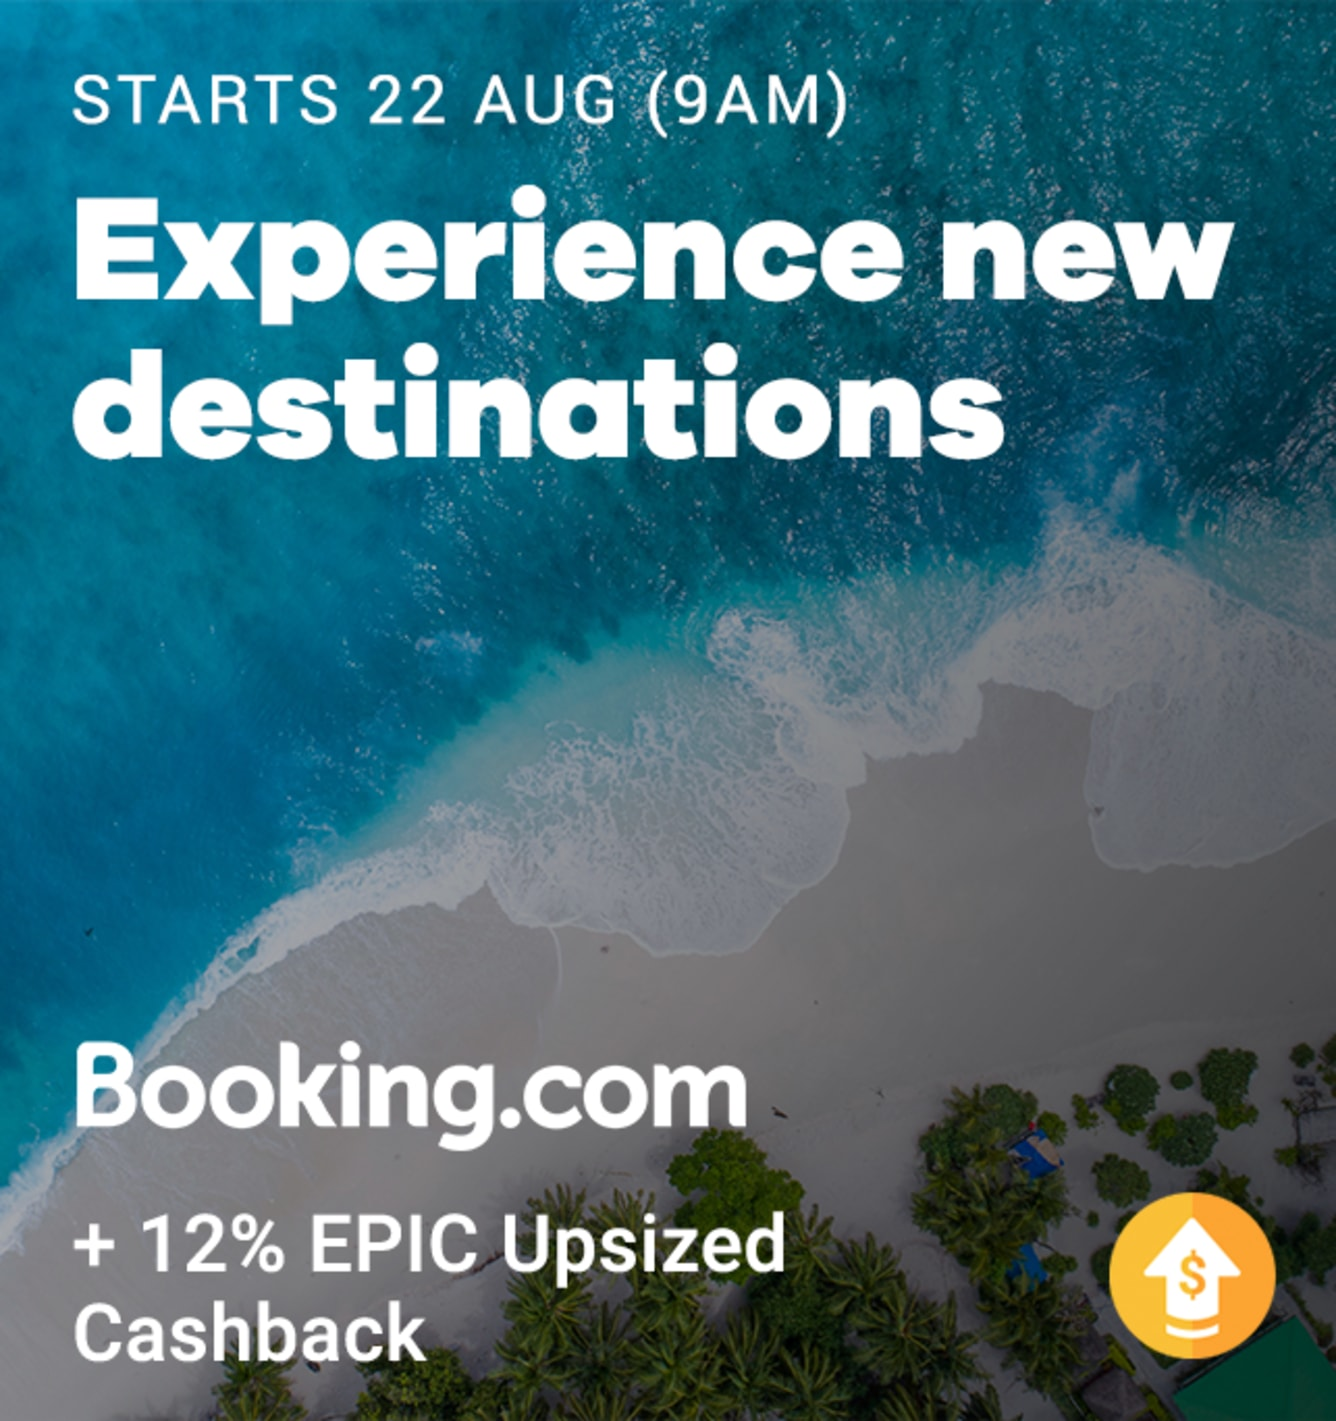 Travel Fair: Booking.com 12% Upsized Cashback 2019